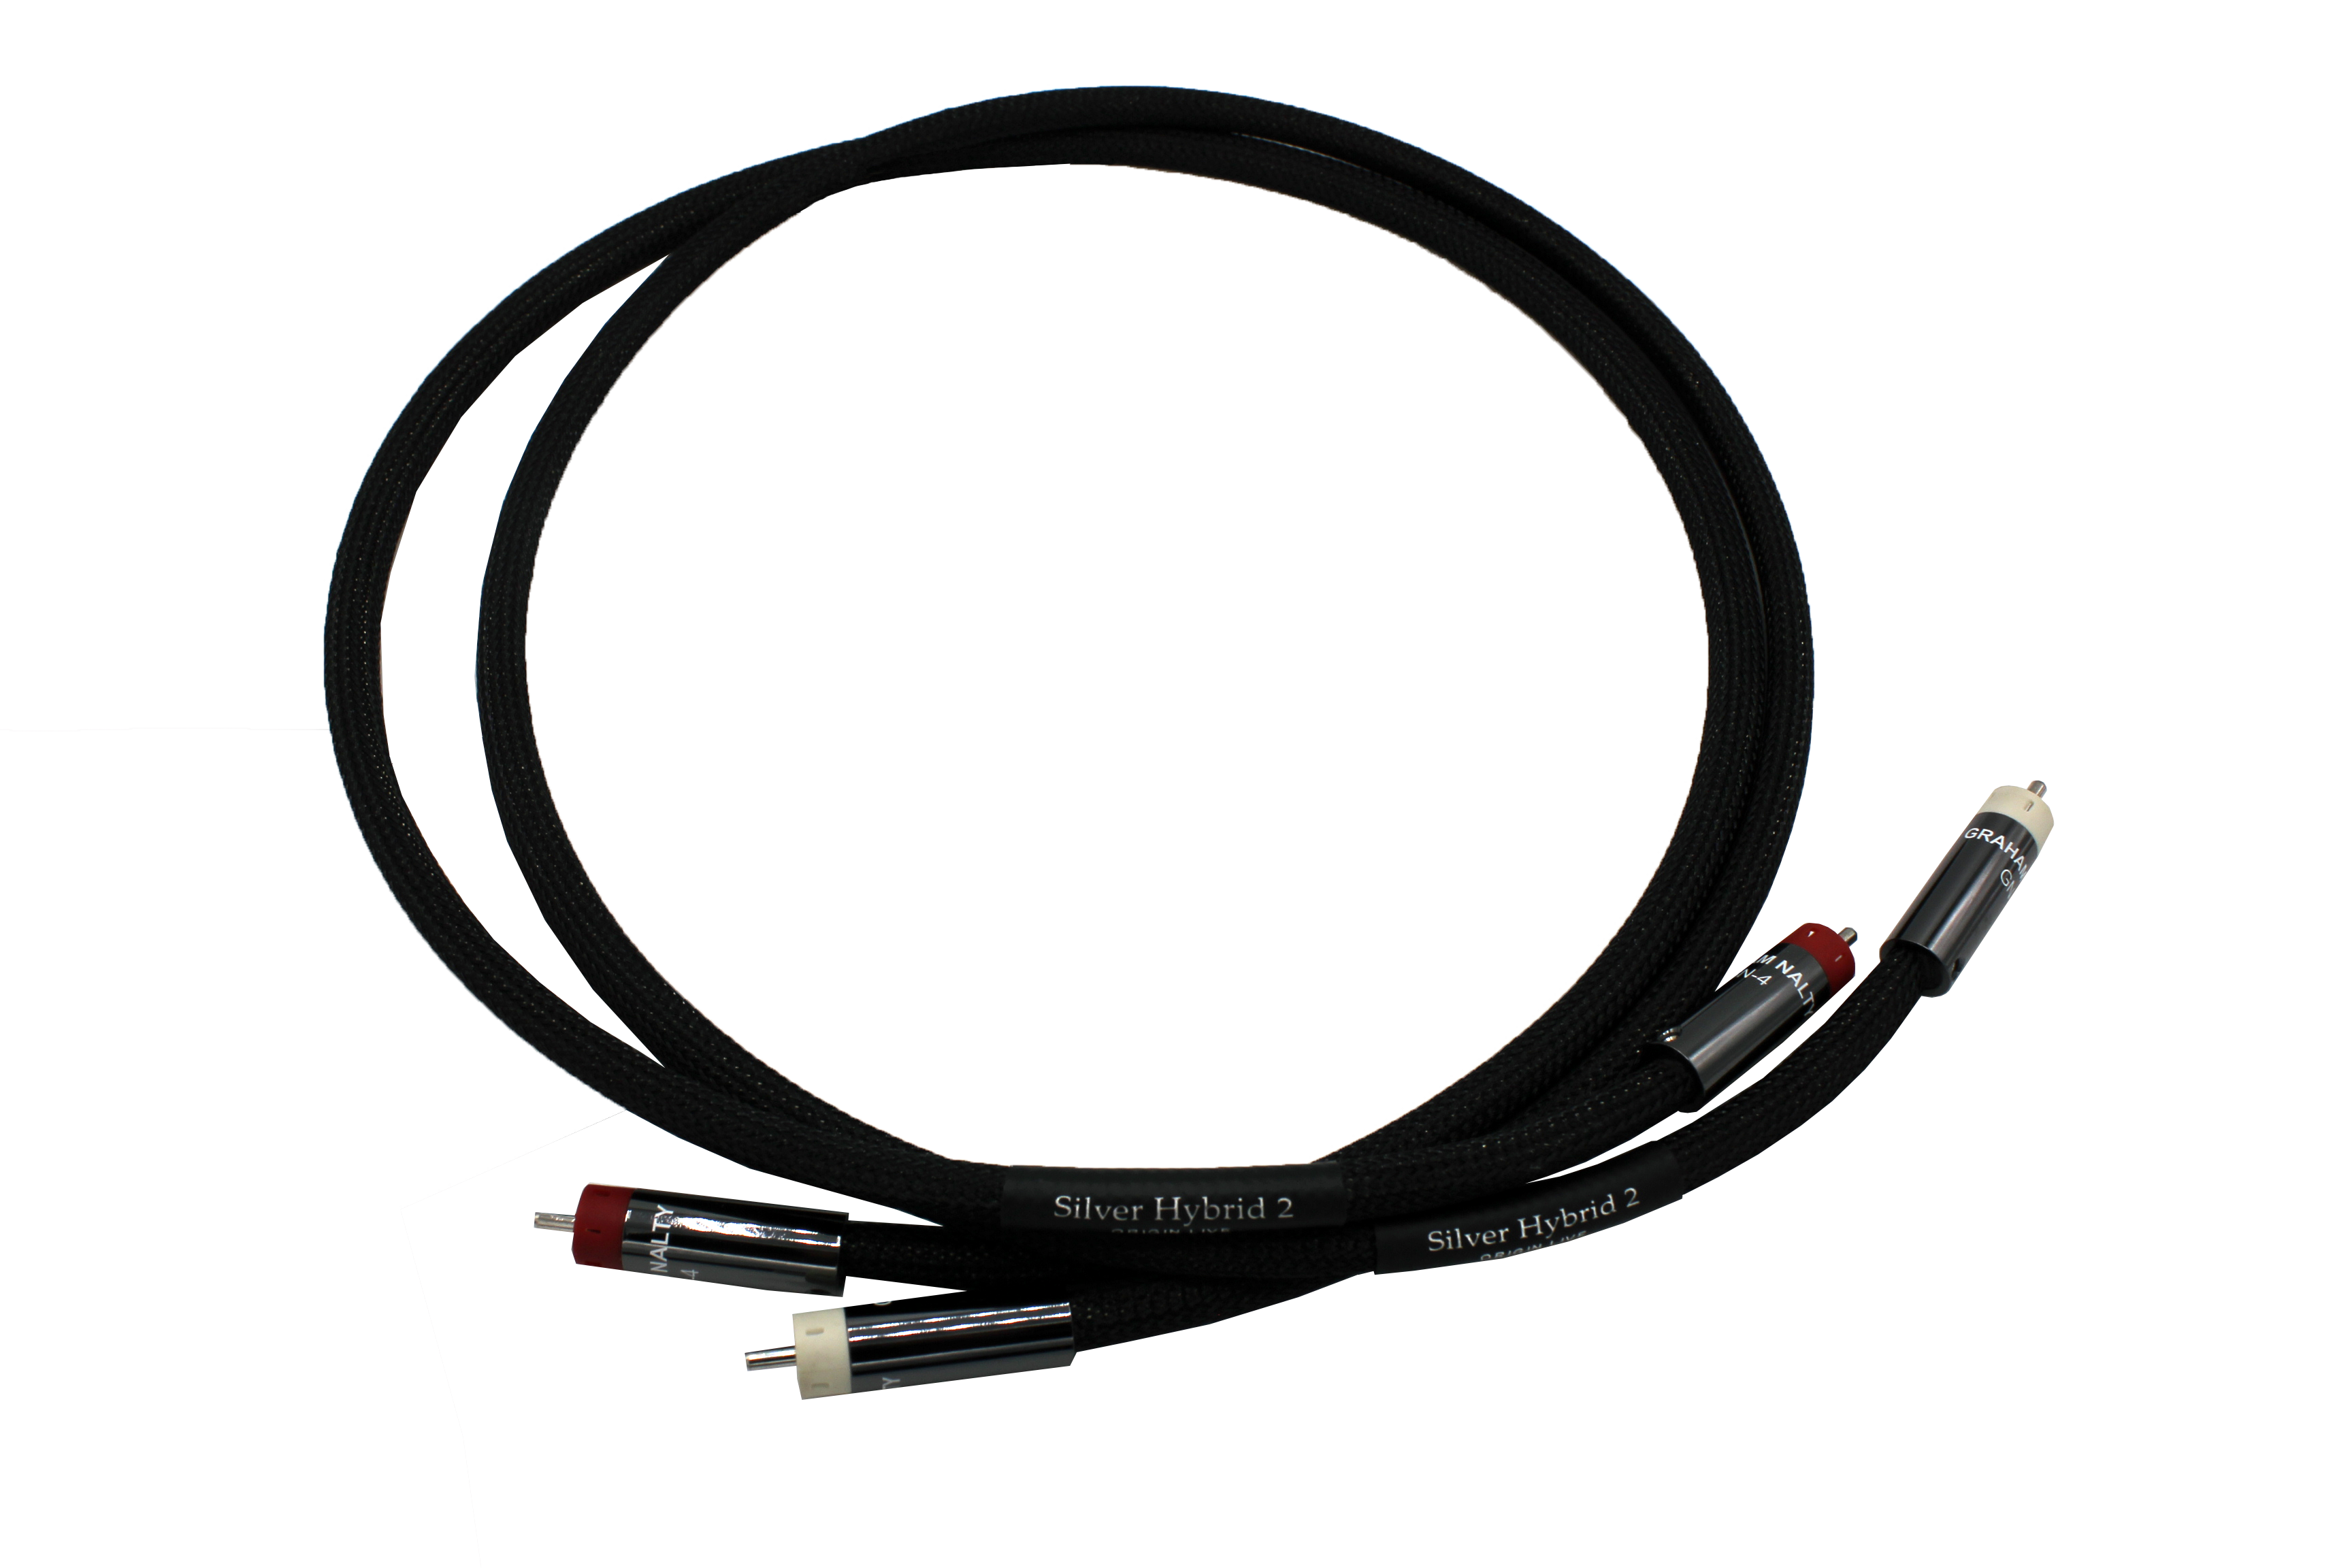 Leading interconnect cable